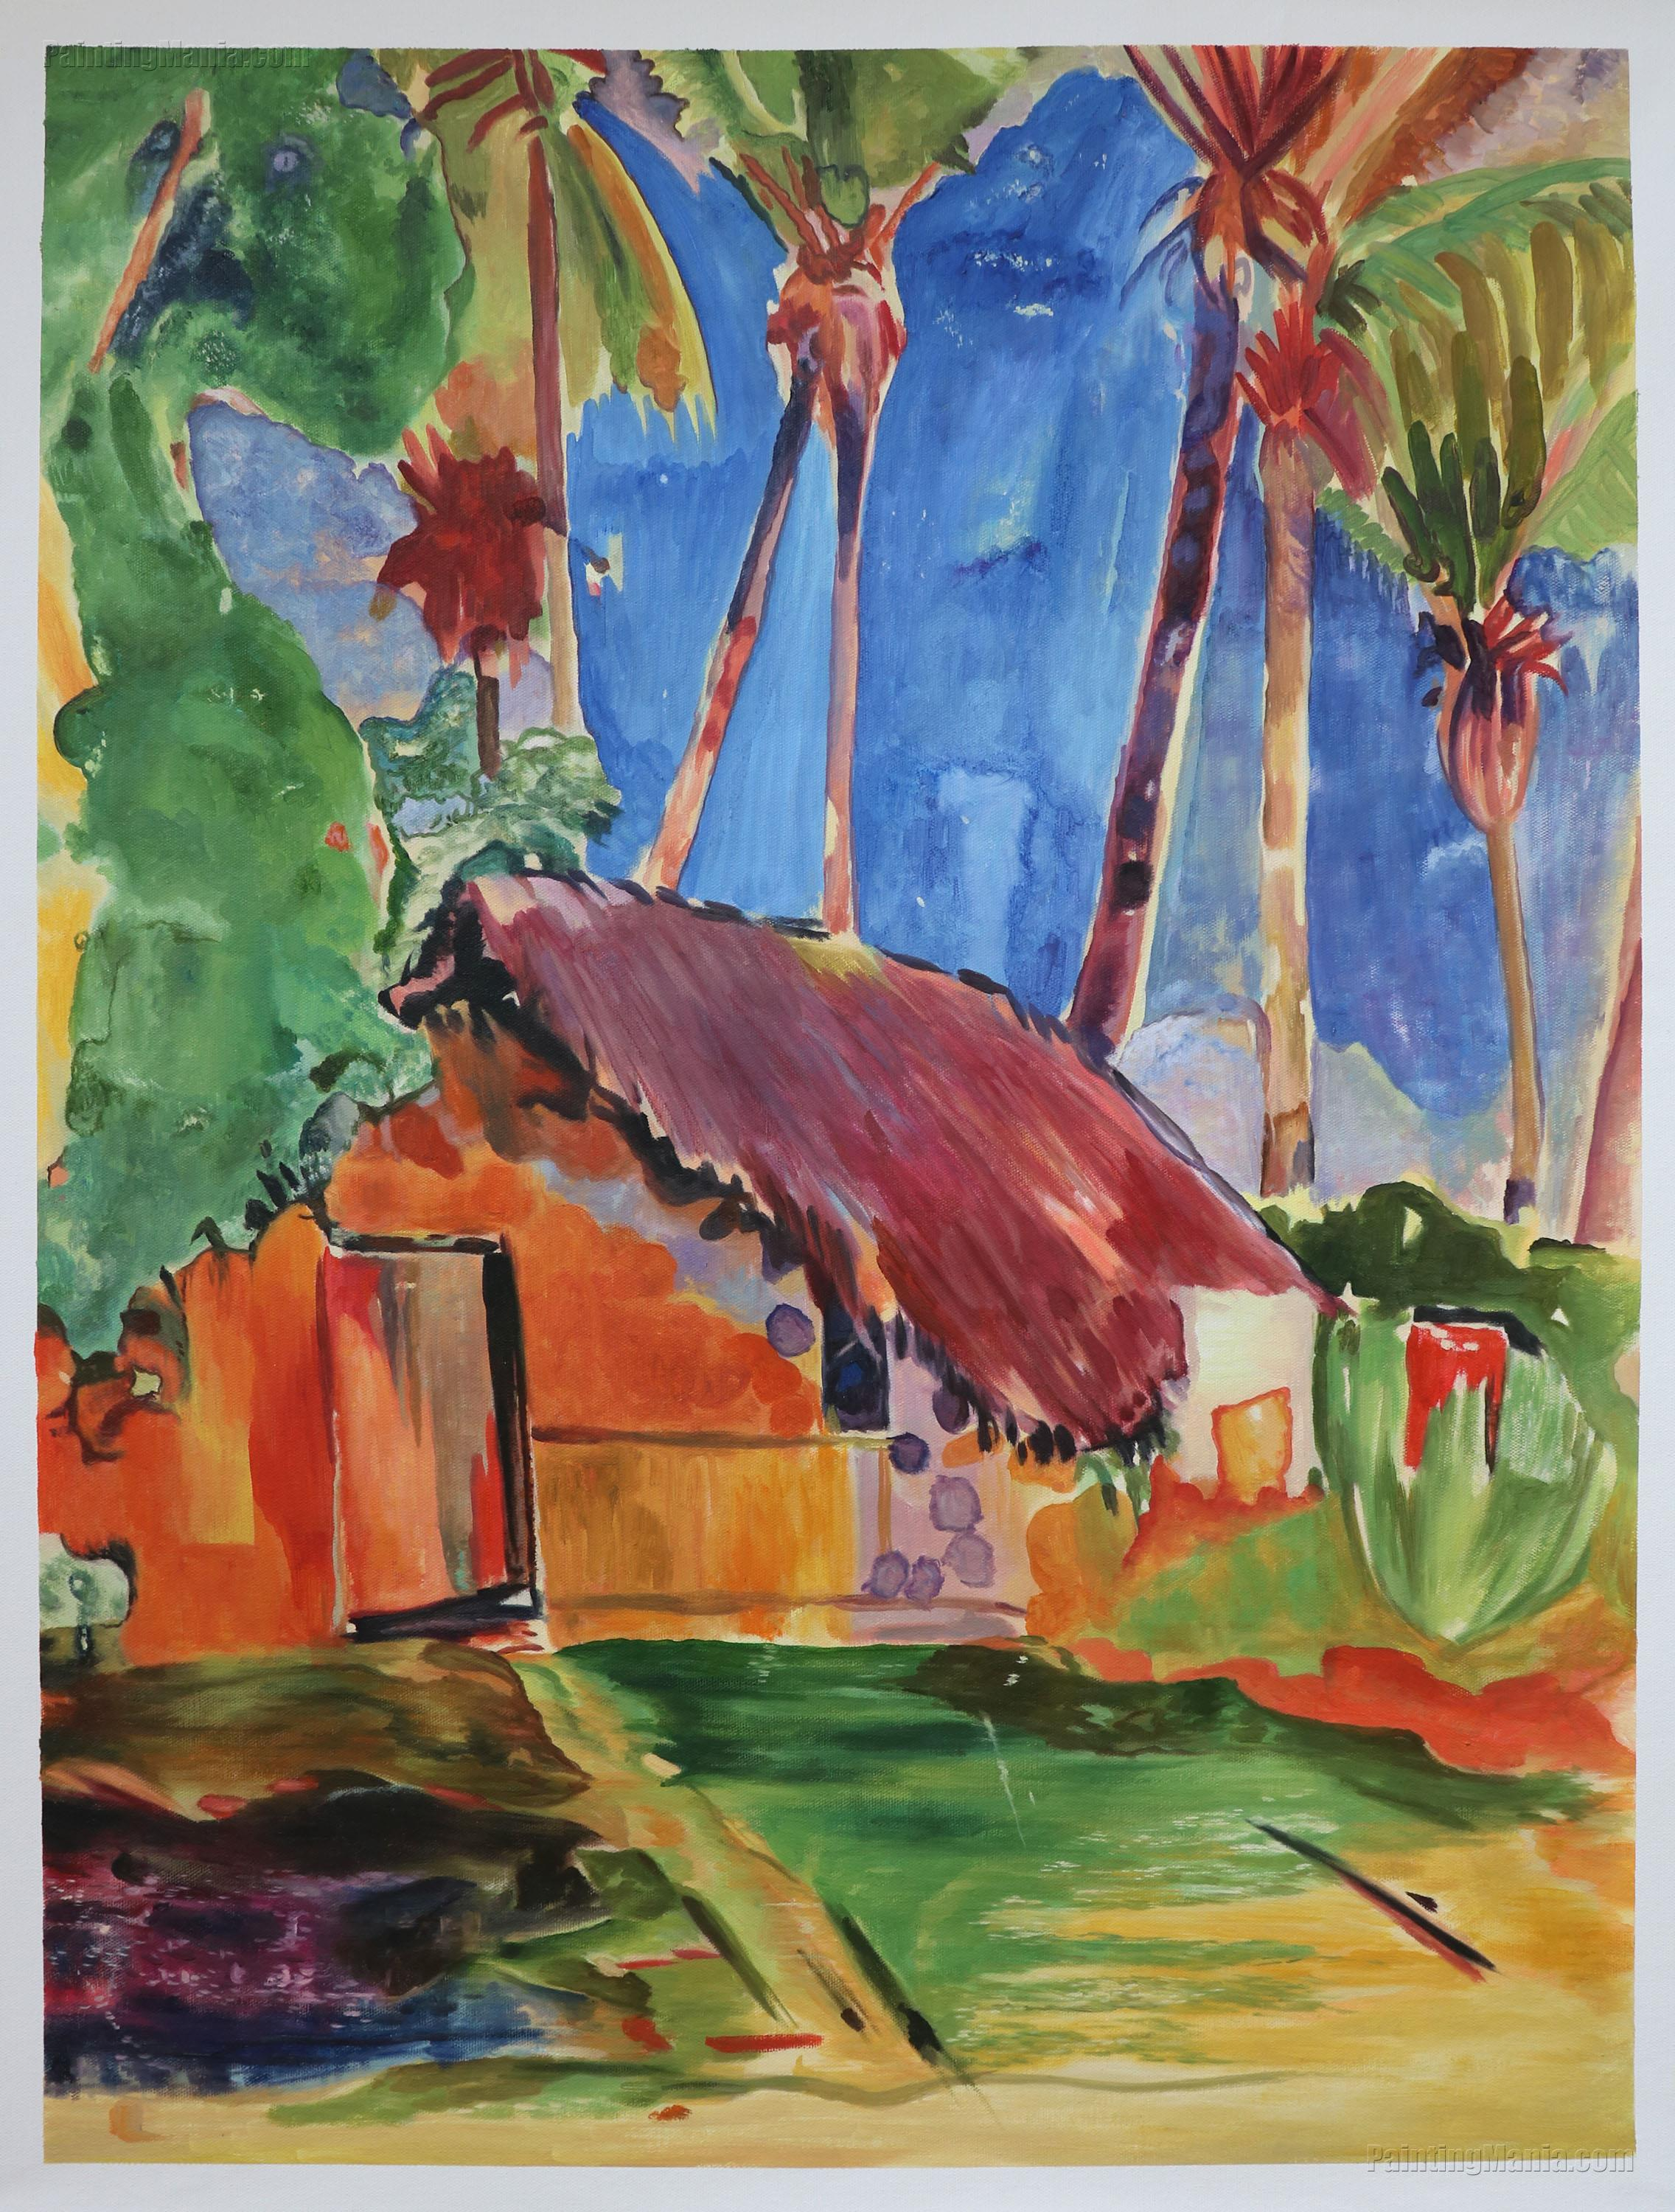 Thatched Hut under Palm Trees